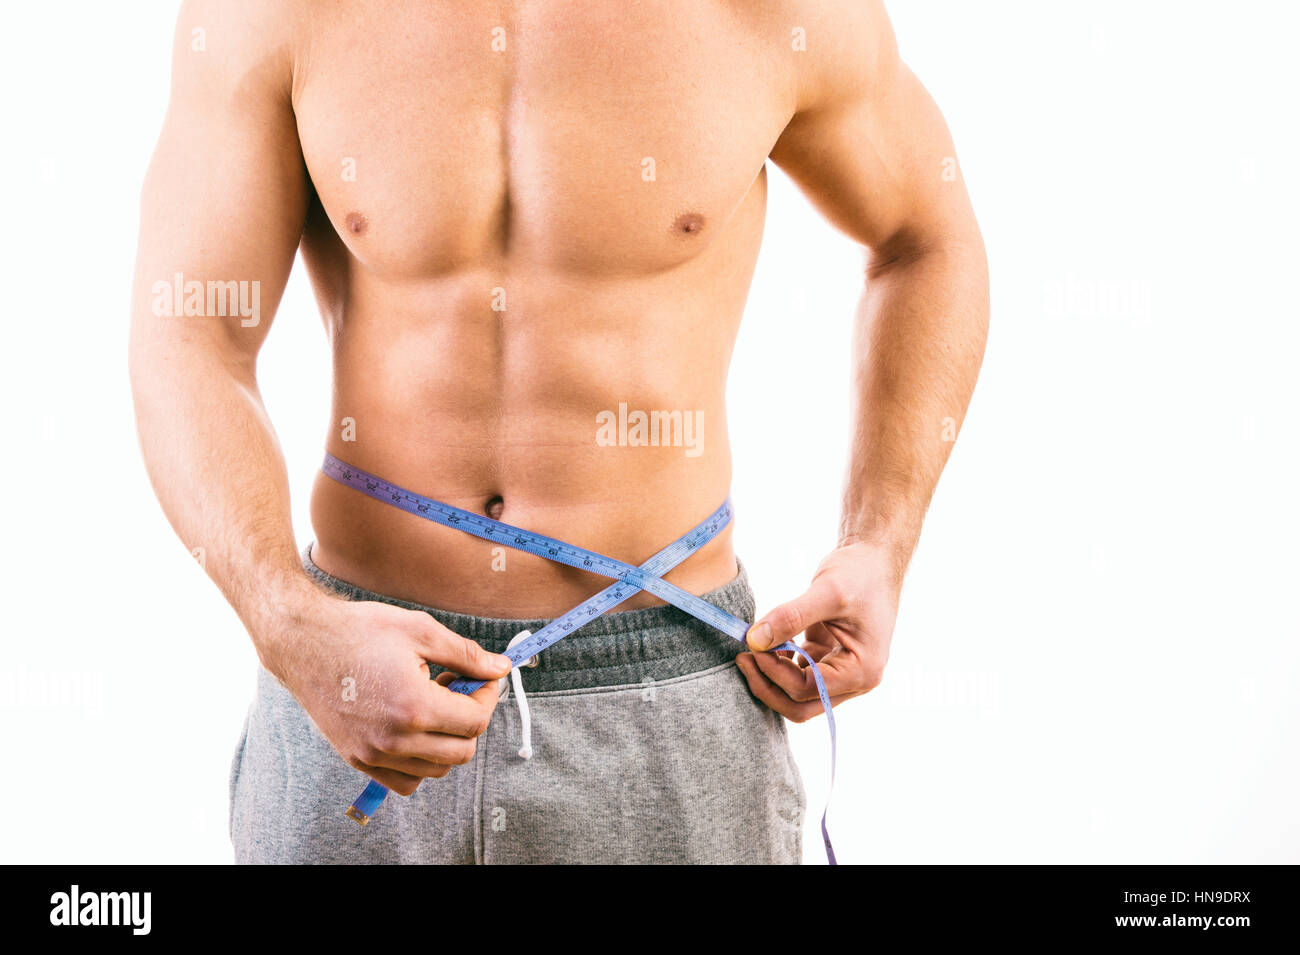 Male torso and blue tape measure on white background - Stock Image